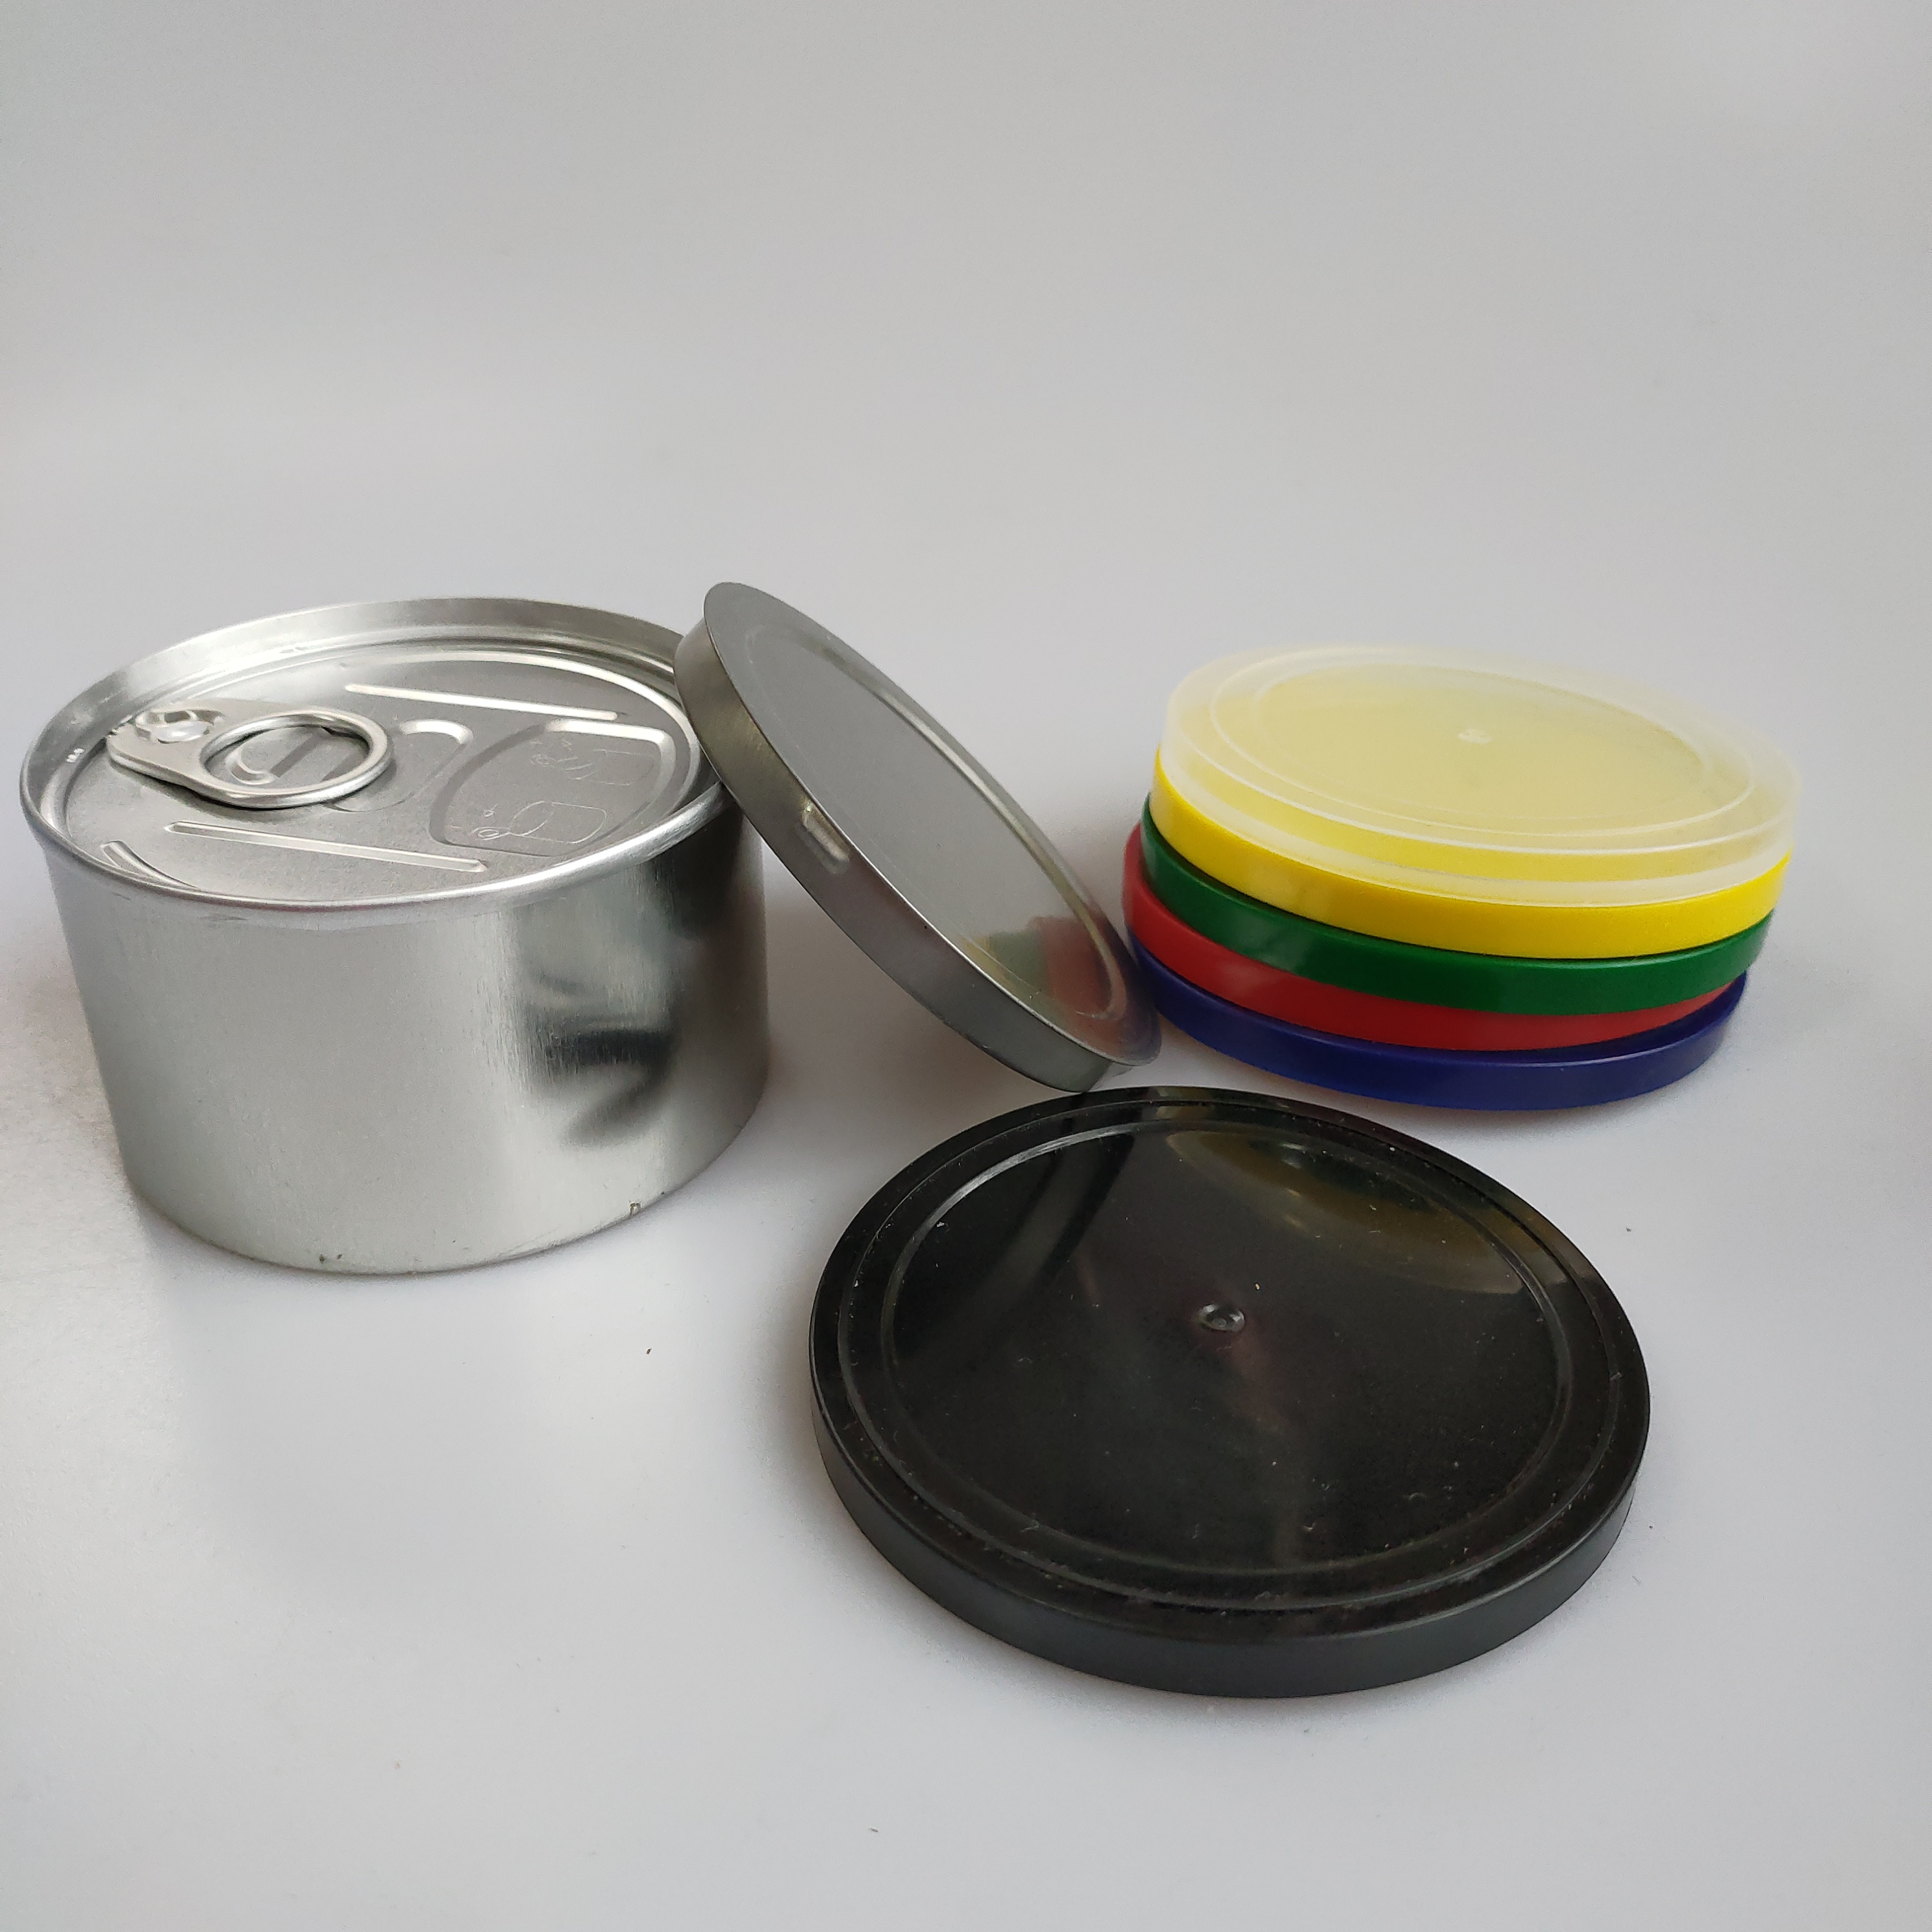 Girl scout cookies  dry herb can push bottom lid seal no tools needed holding 3.5g  bud flower air tight metal jar